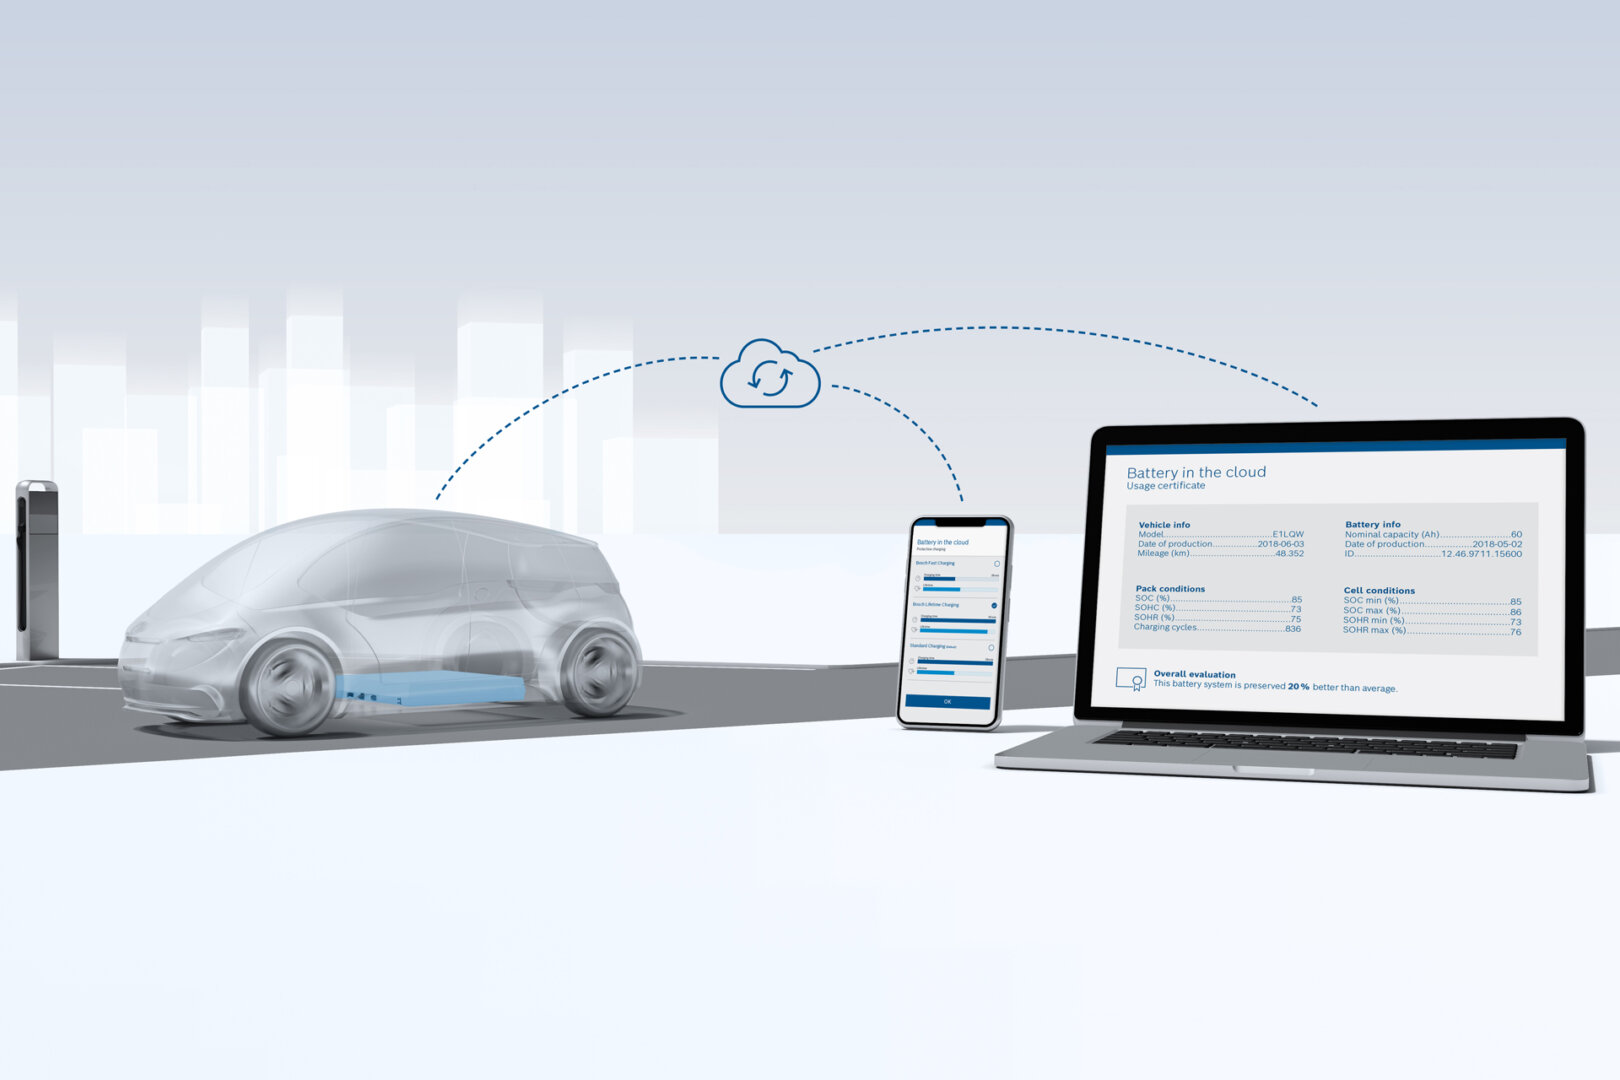 Bosch E-Auto Batterie in der Cloud